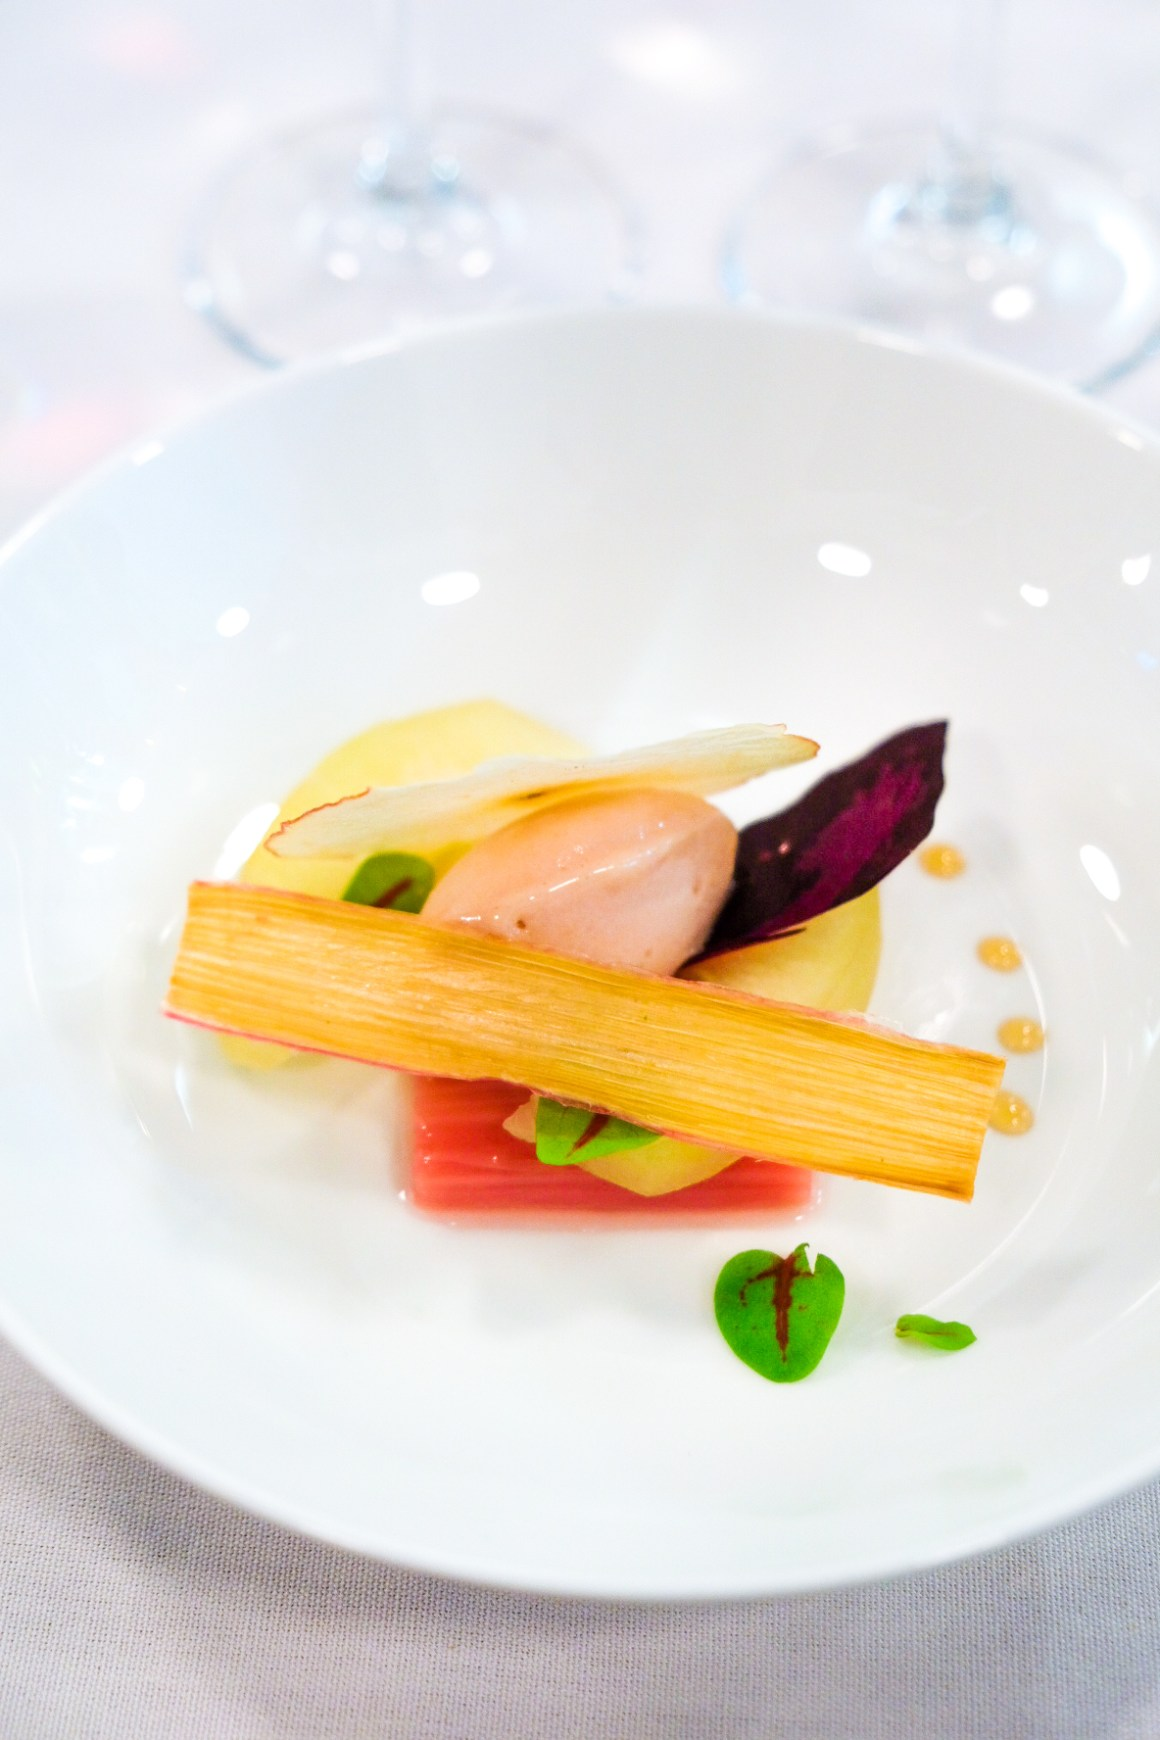 Restaurant Jag Celebrate Earth Day With Spring Produce - Reine des Pres, Pink Lady Apple, Rhubarbe